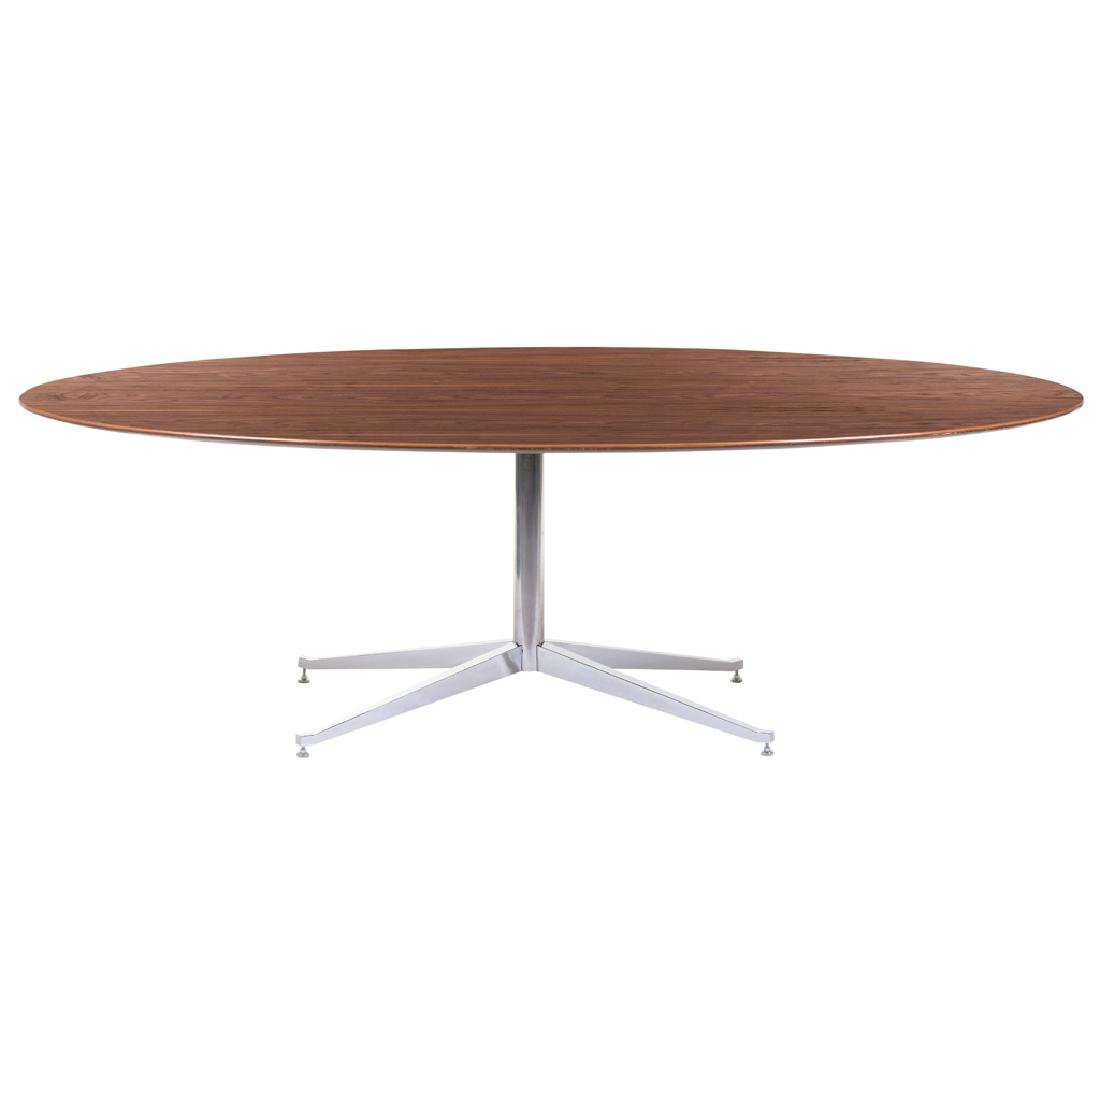 Florence Knoll for Knoll. Chromed metal dining table